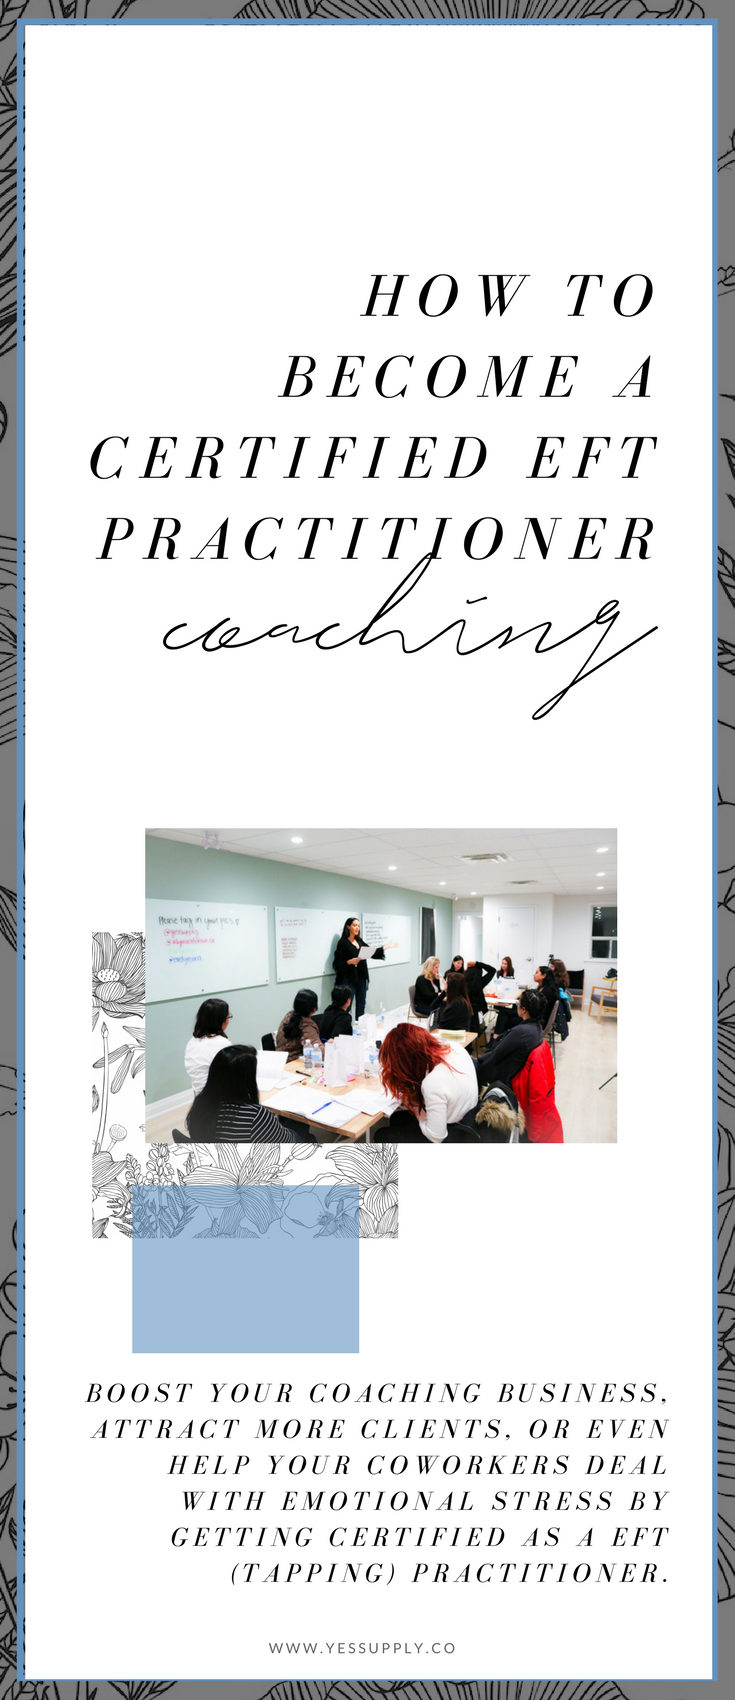 want to become a coach, and get certified as an eft practitioner? This will give you techniques to make your coaching business grow and gaiin more clients. You'll be able to help people in a deeper way. Mindset, spirituality coaches will love this.